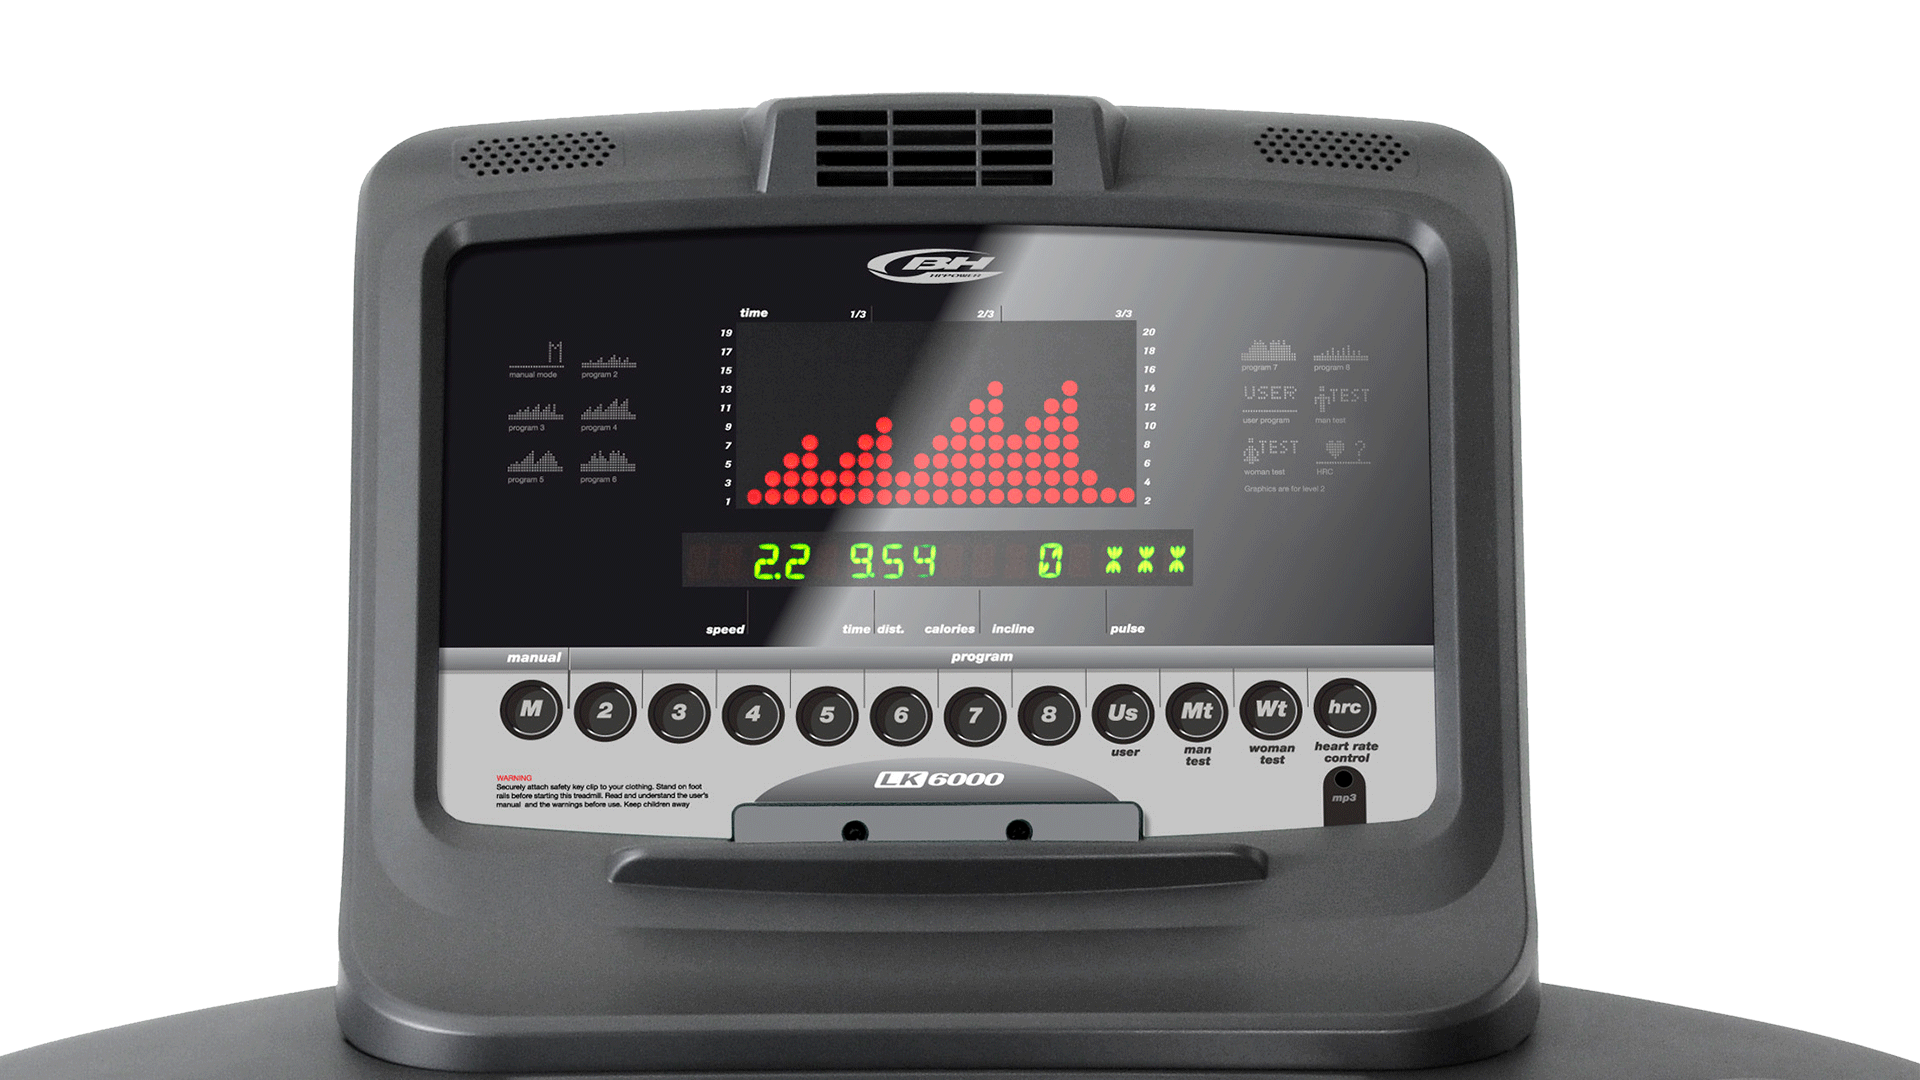 LK5500 Professional treadmill